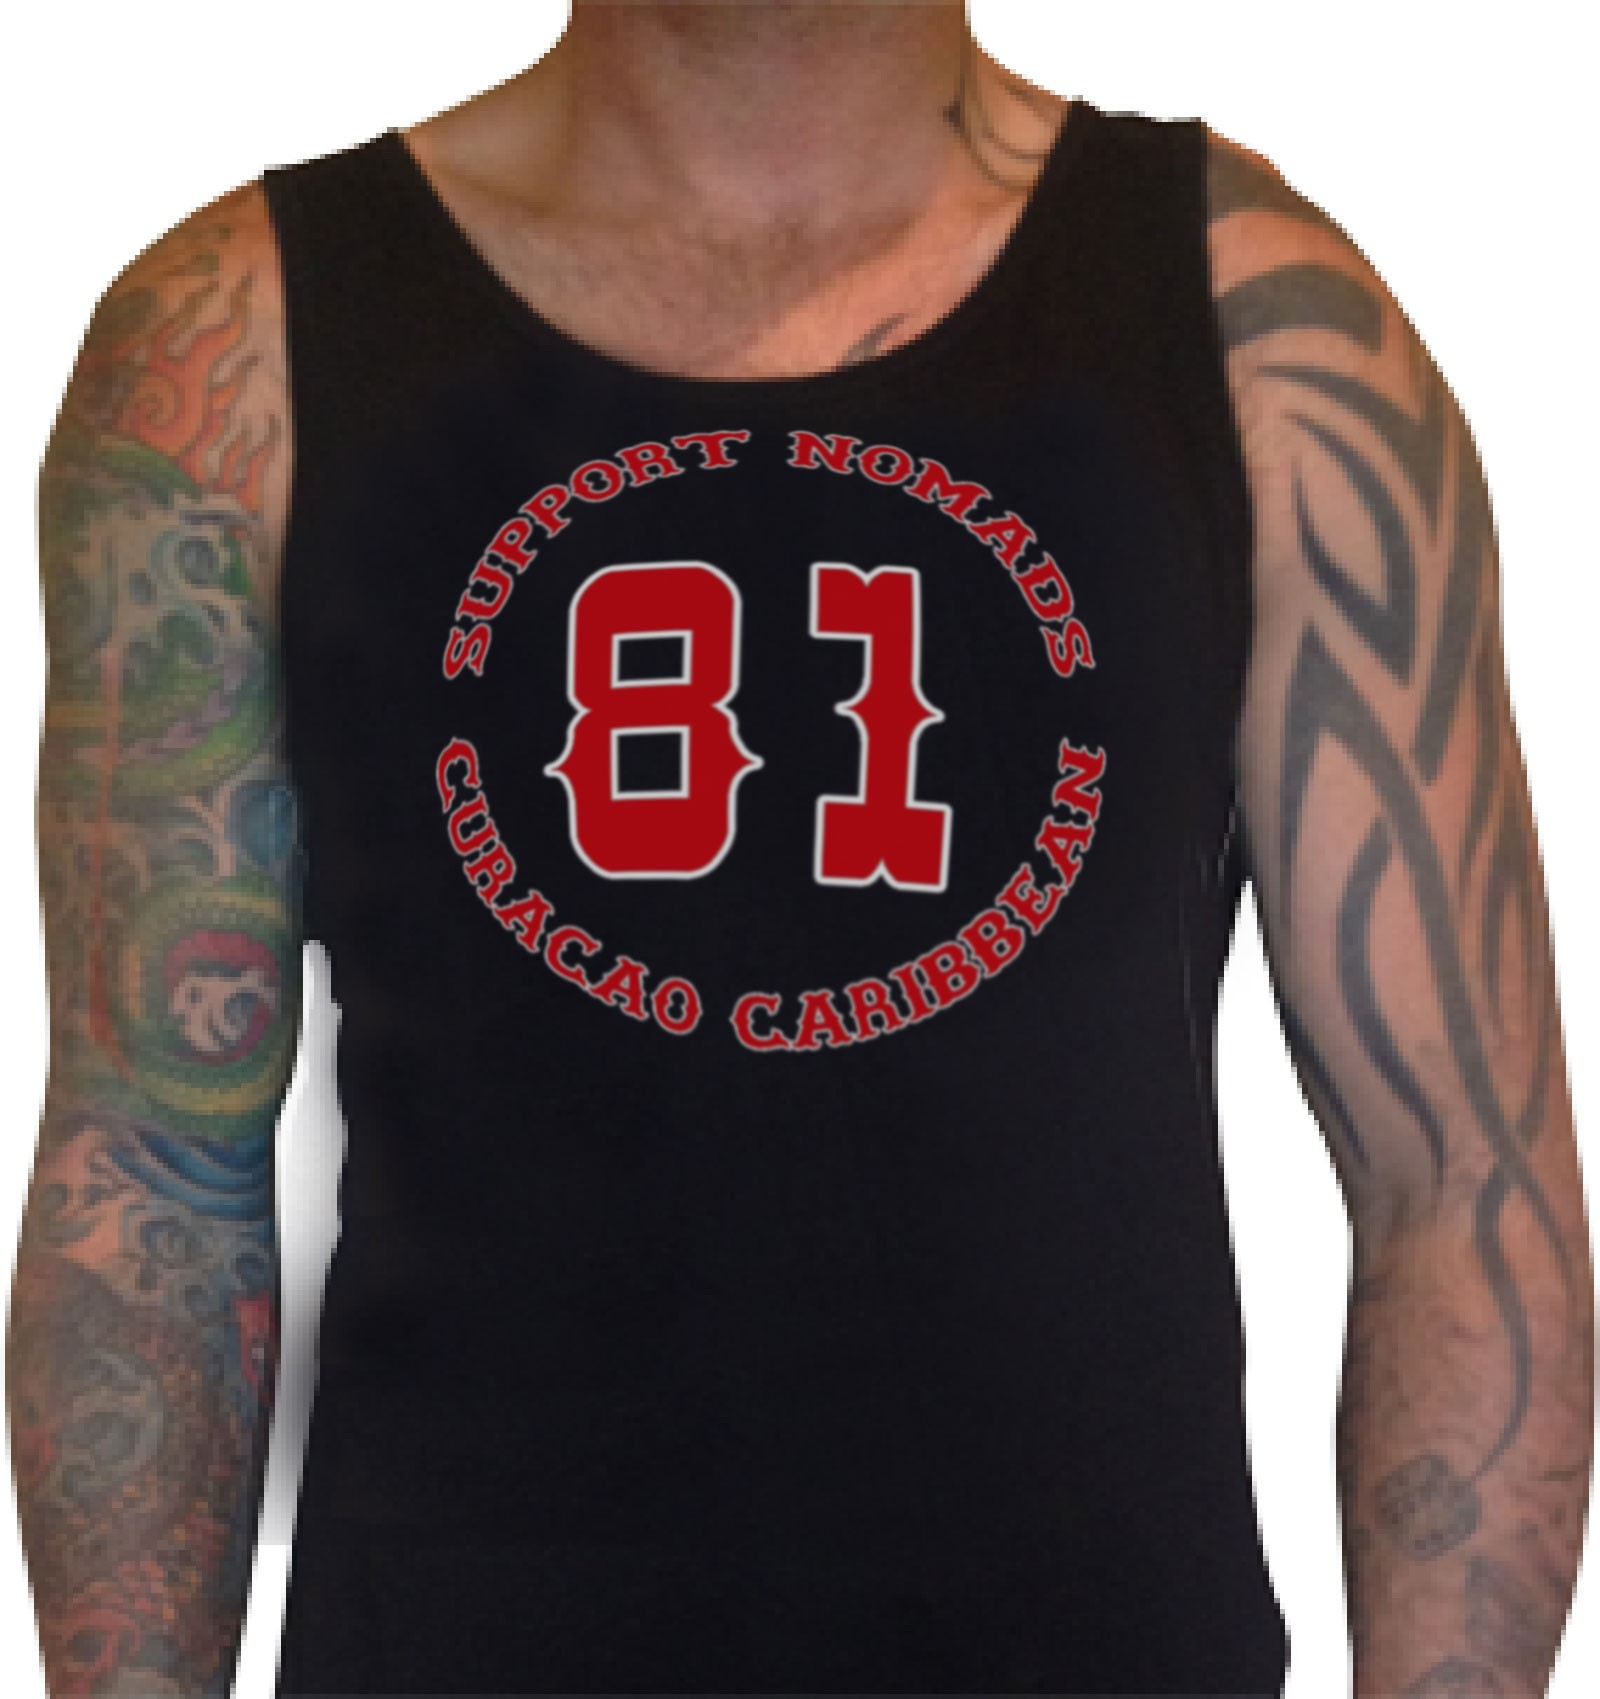 Details zu 01 Hells Angels Nomads Caribbean Tank Top model 5 black